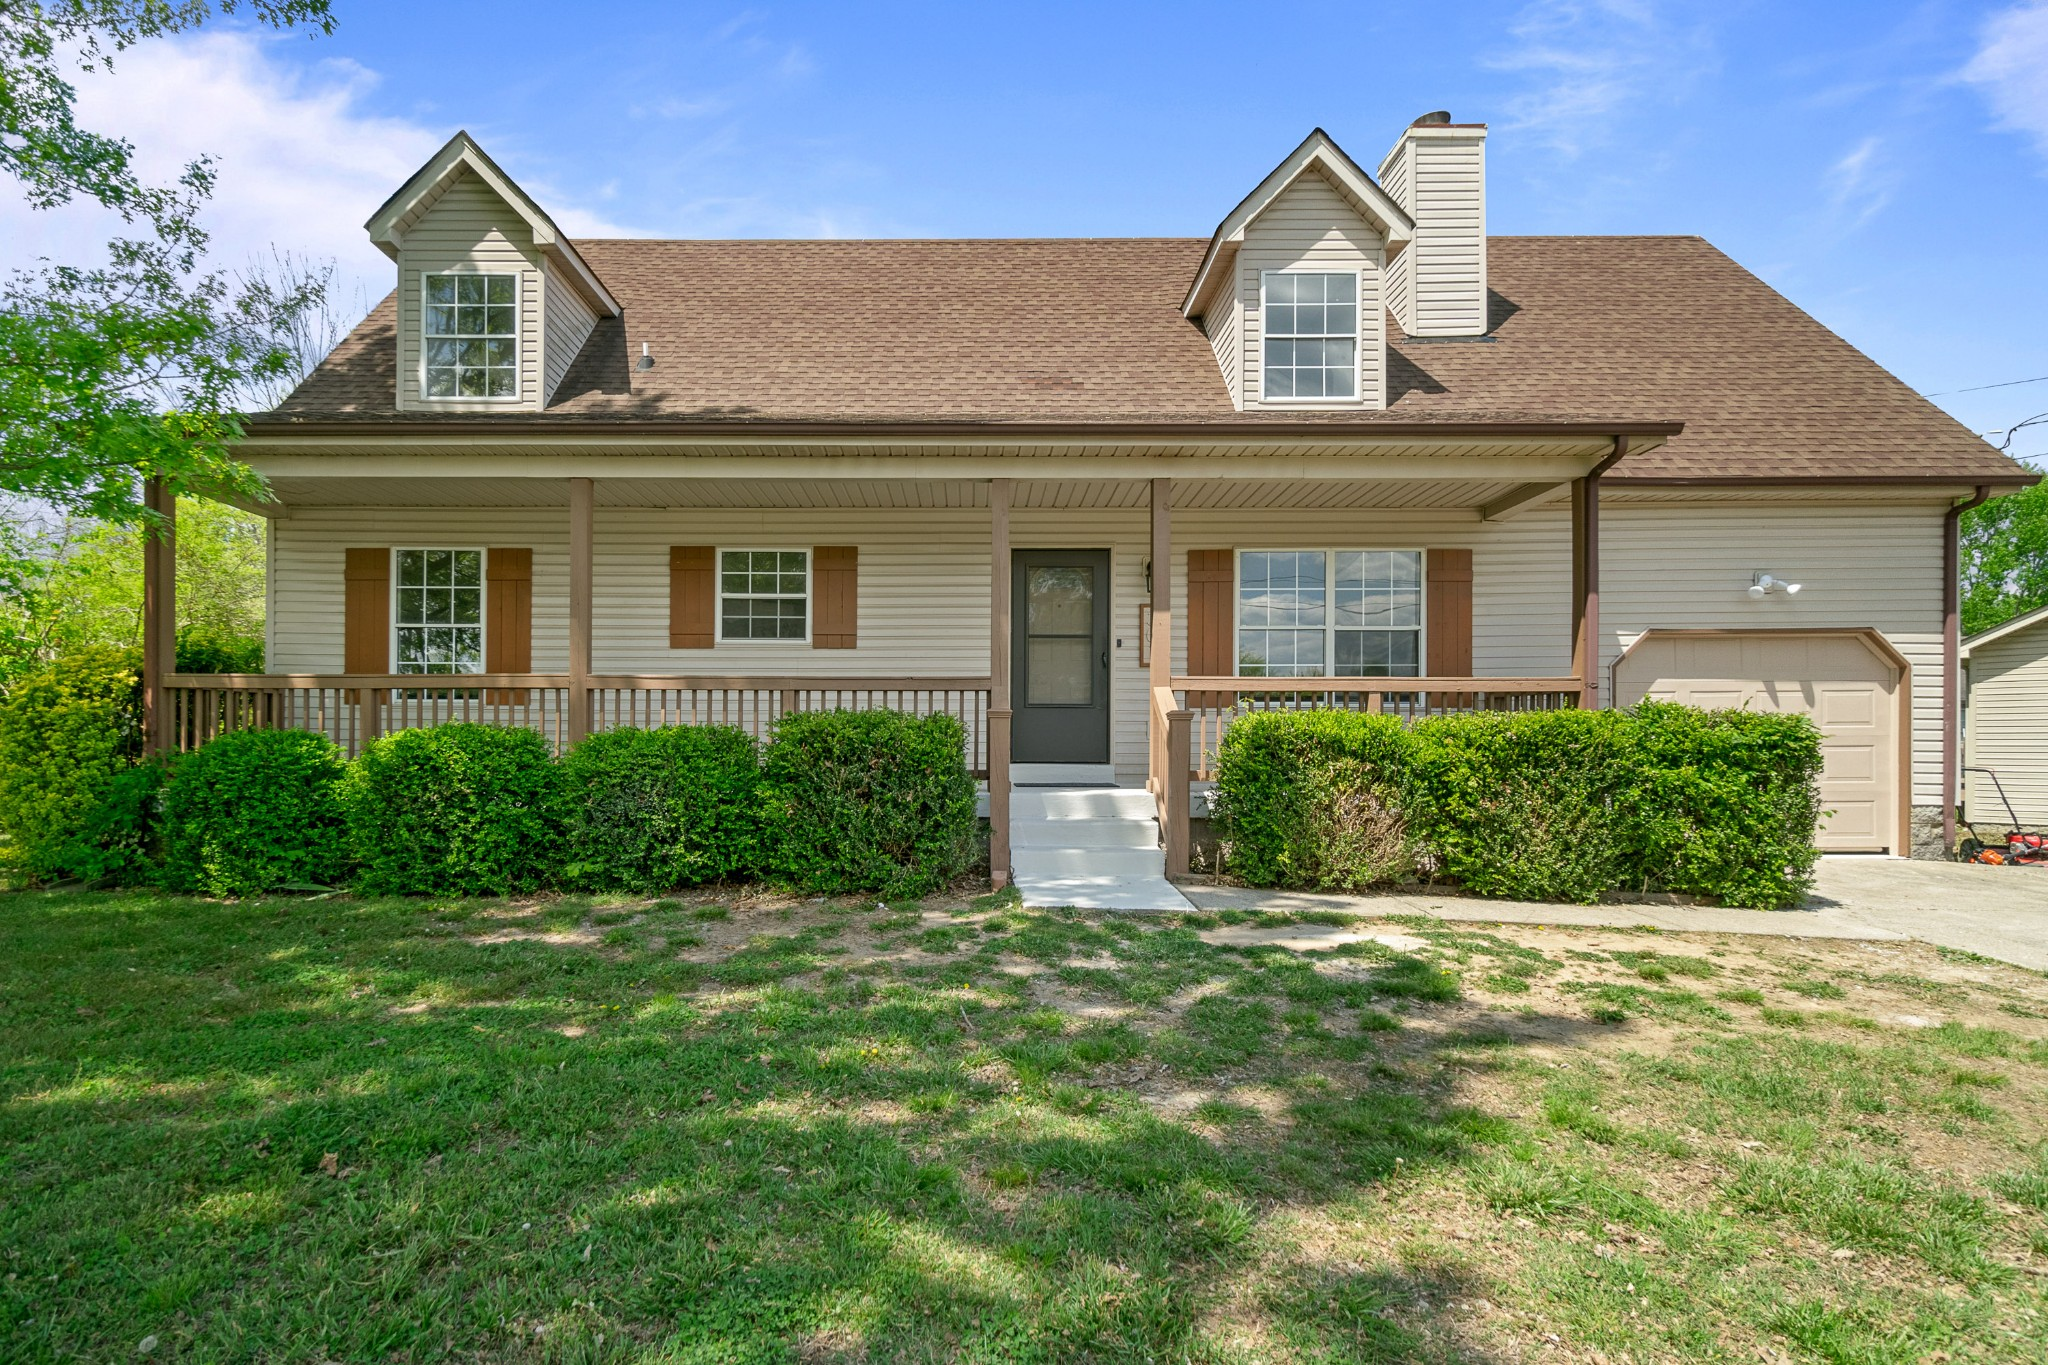 301 Valley Forge Ct Property Photo - LA VERGNE, TN real estate listing